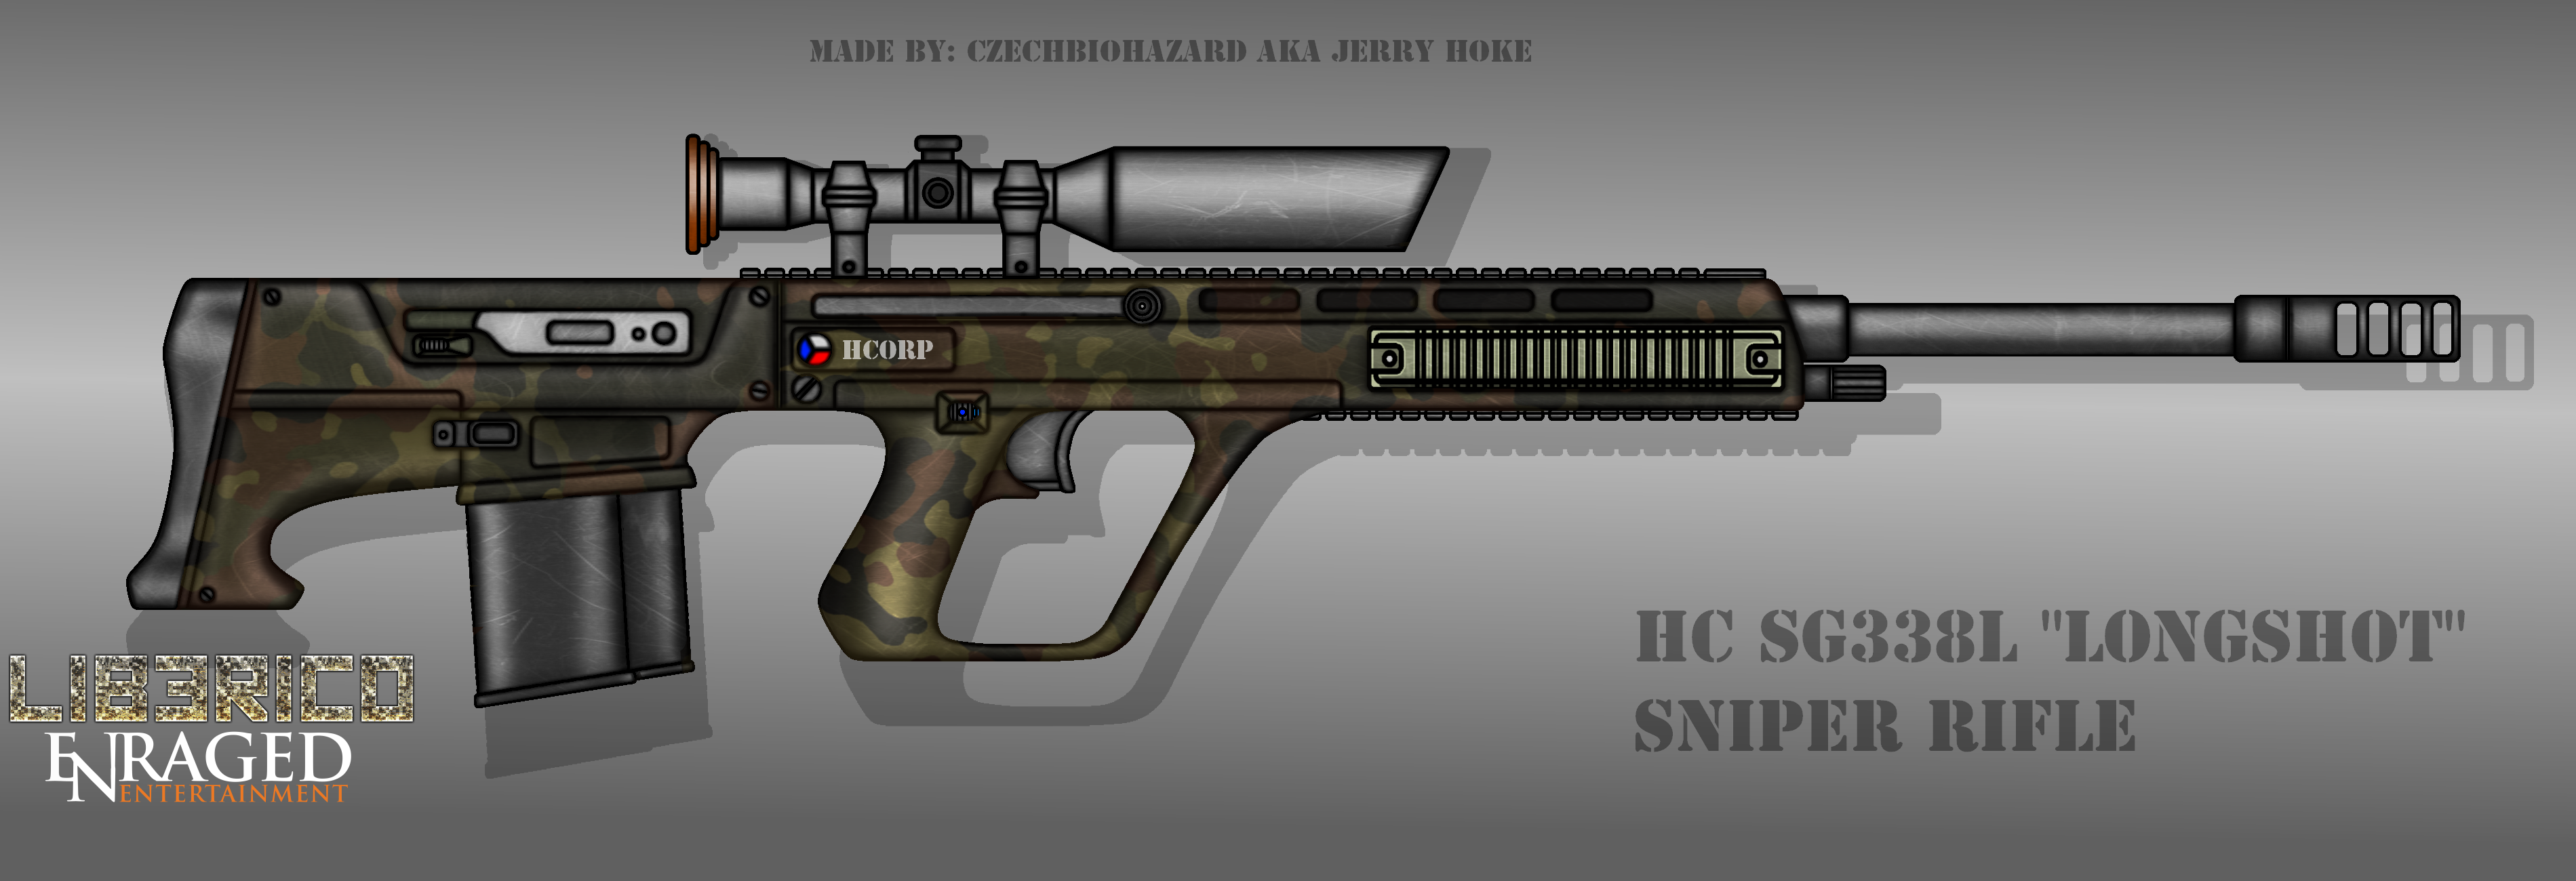 Fictional Firearm: HC-SG338L Sniper Rifle by CzechBiohazard